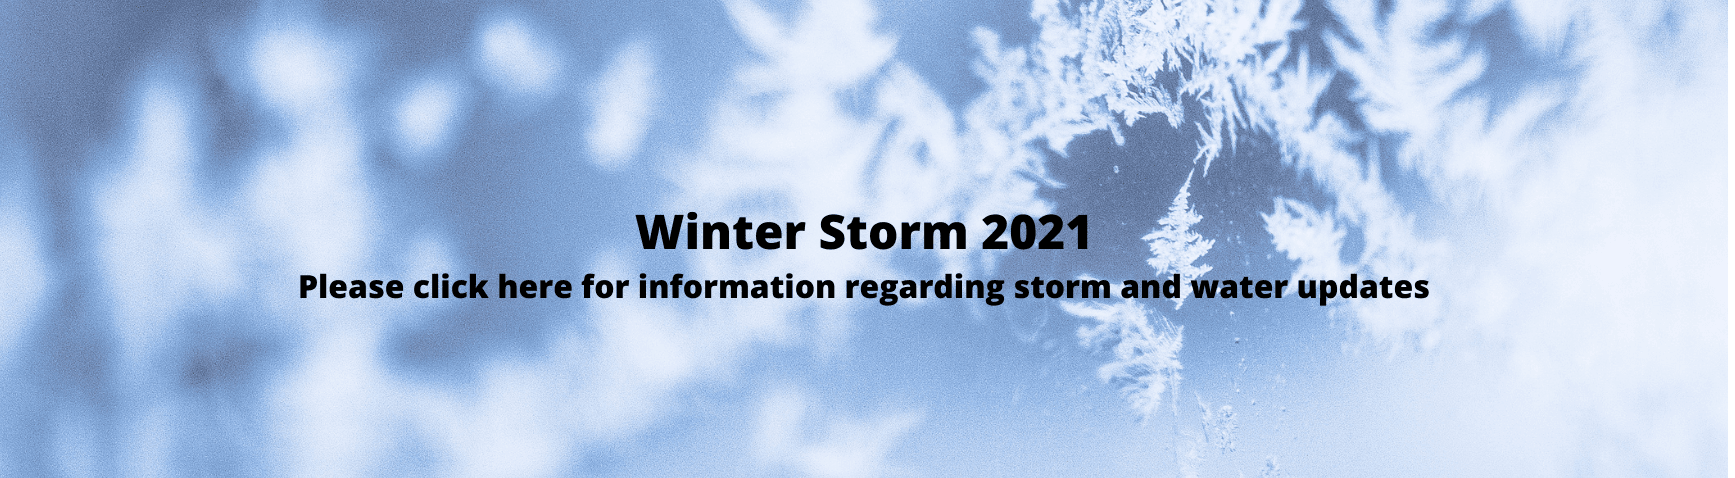 Winter Storm 2021Please click here for information regarding the storm and water updates